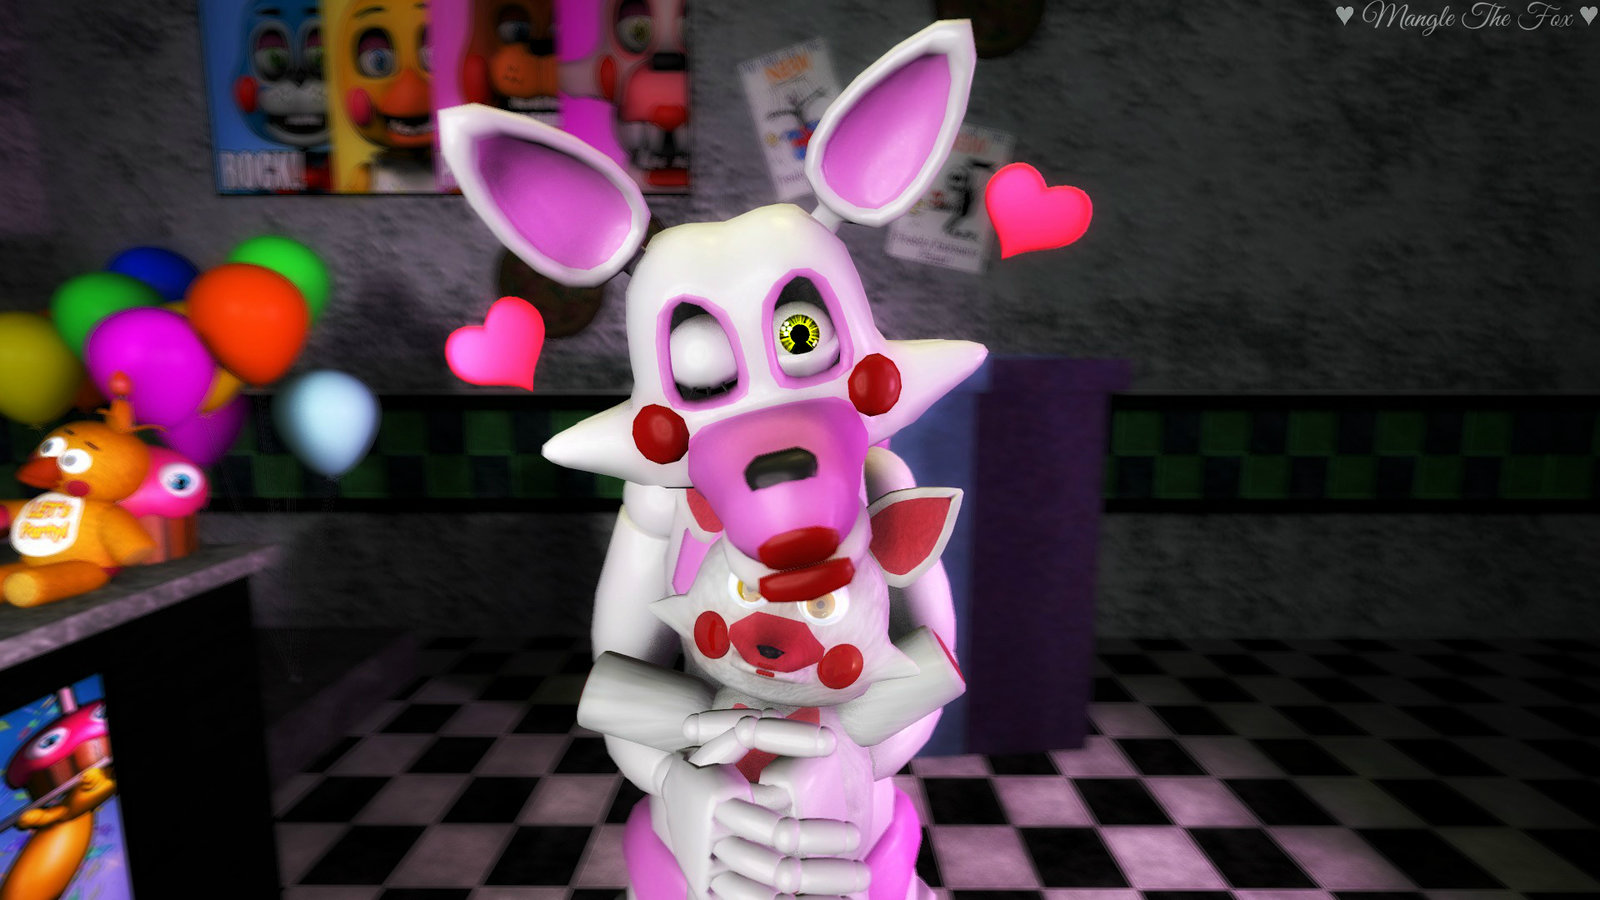 fnaf sfm adorable little mangle sa pamamagitan ng manglethefoxsfm da1g2bd